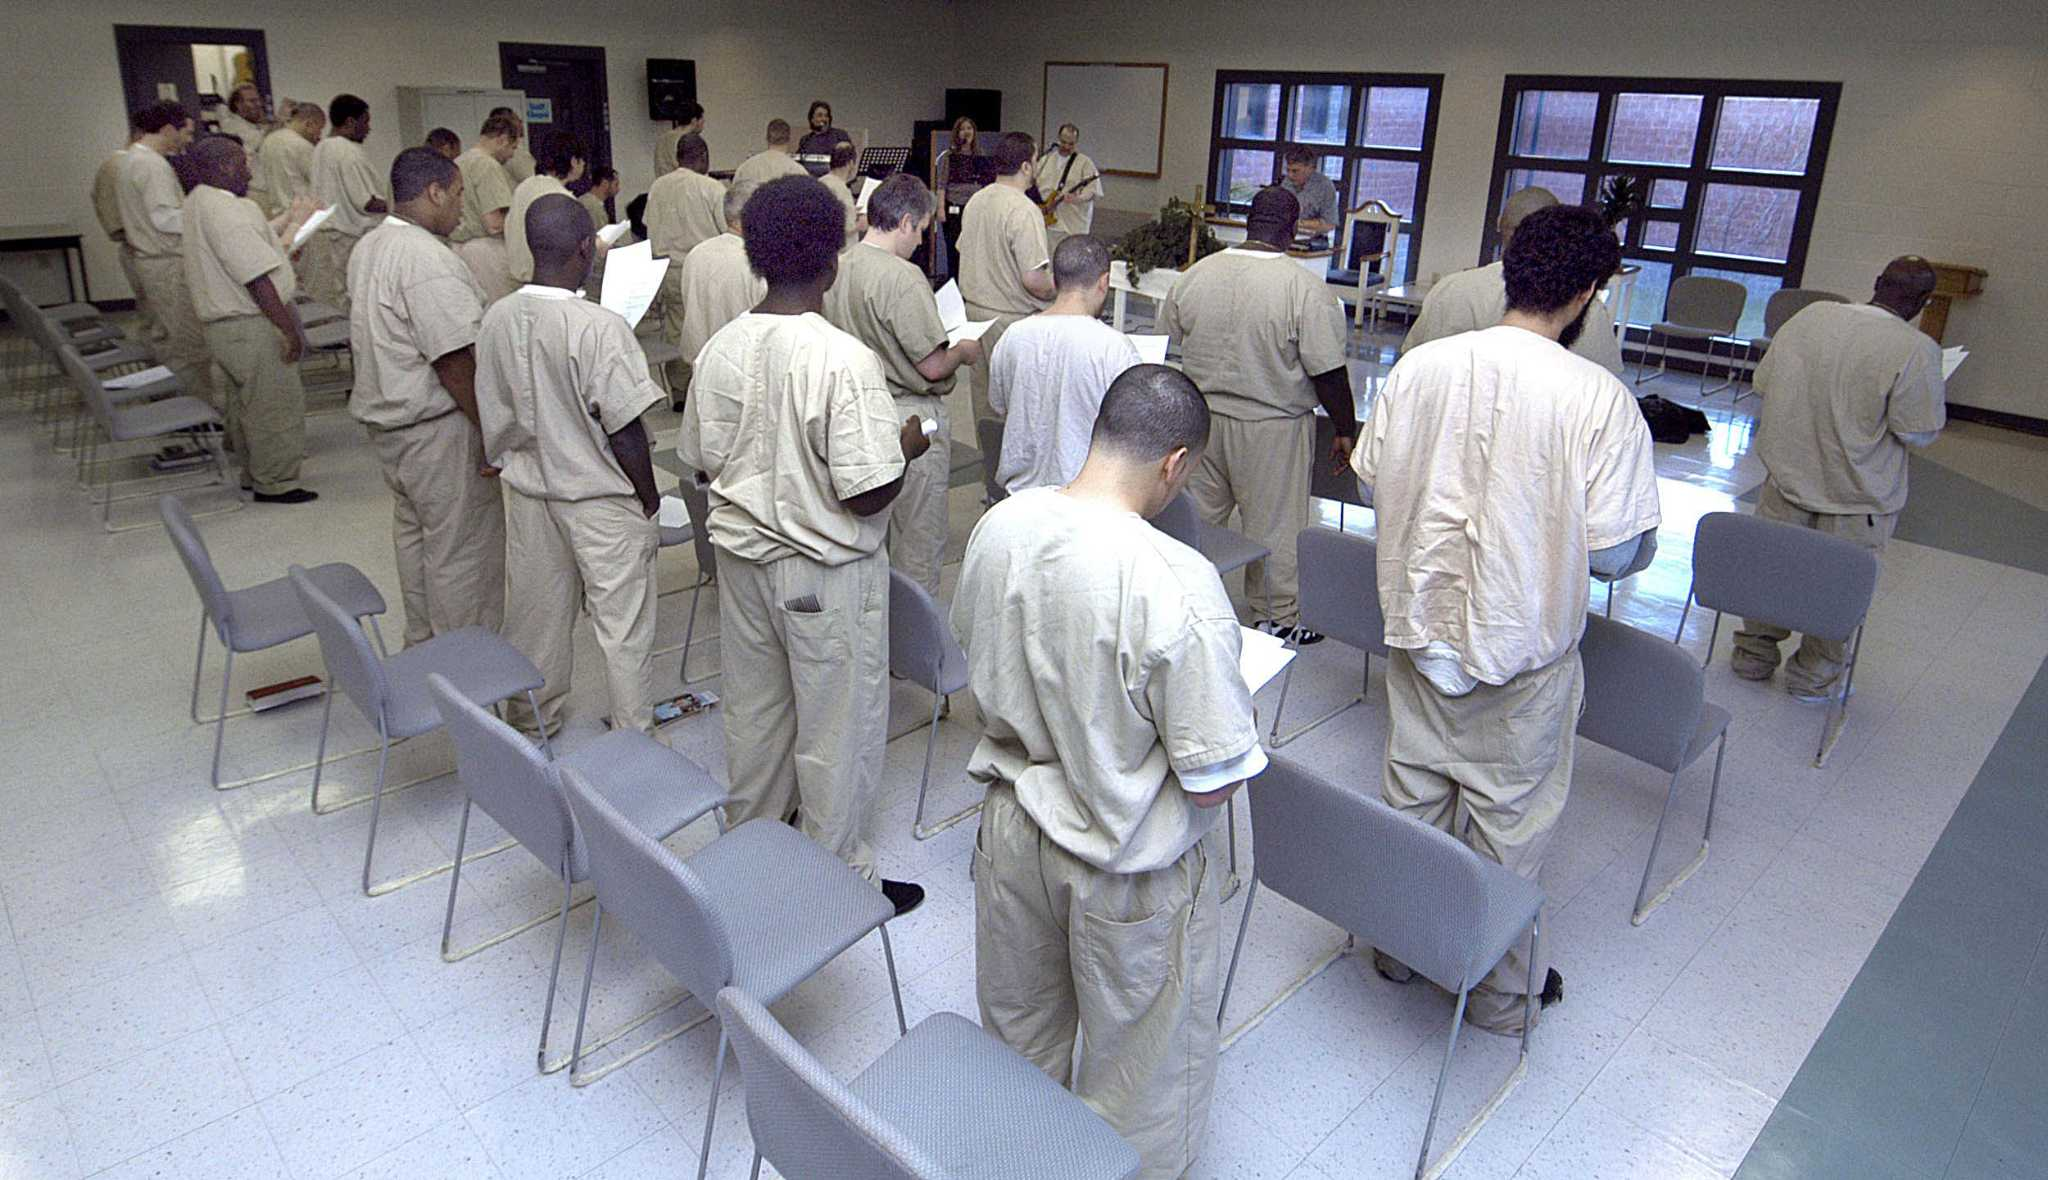 CT on par with nation in prison suicides but not part of rising trend